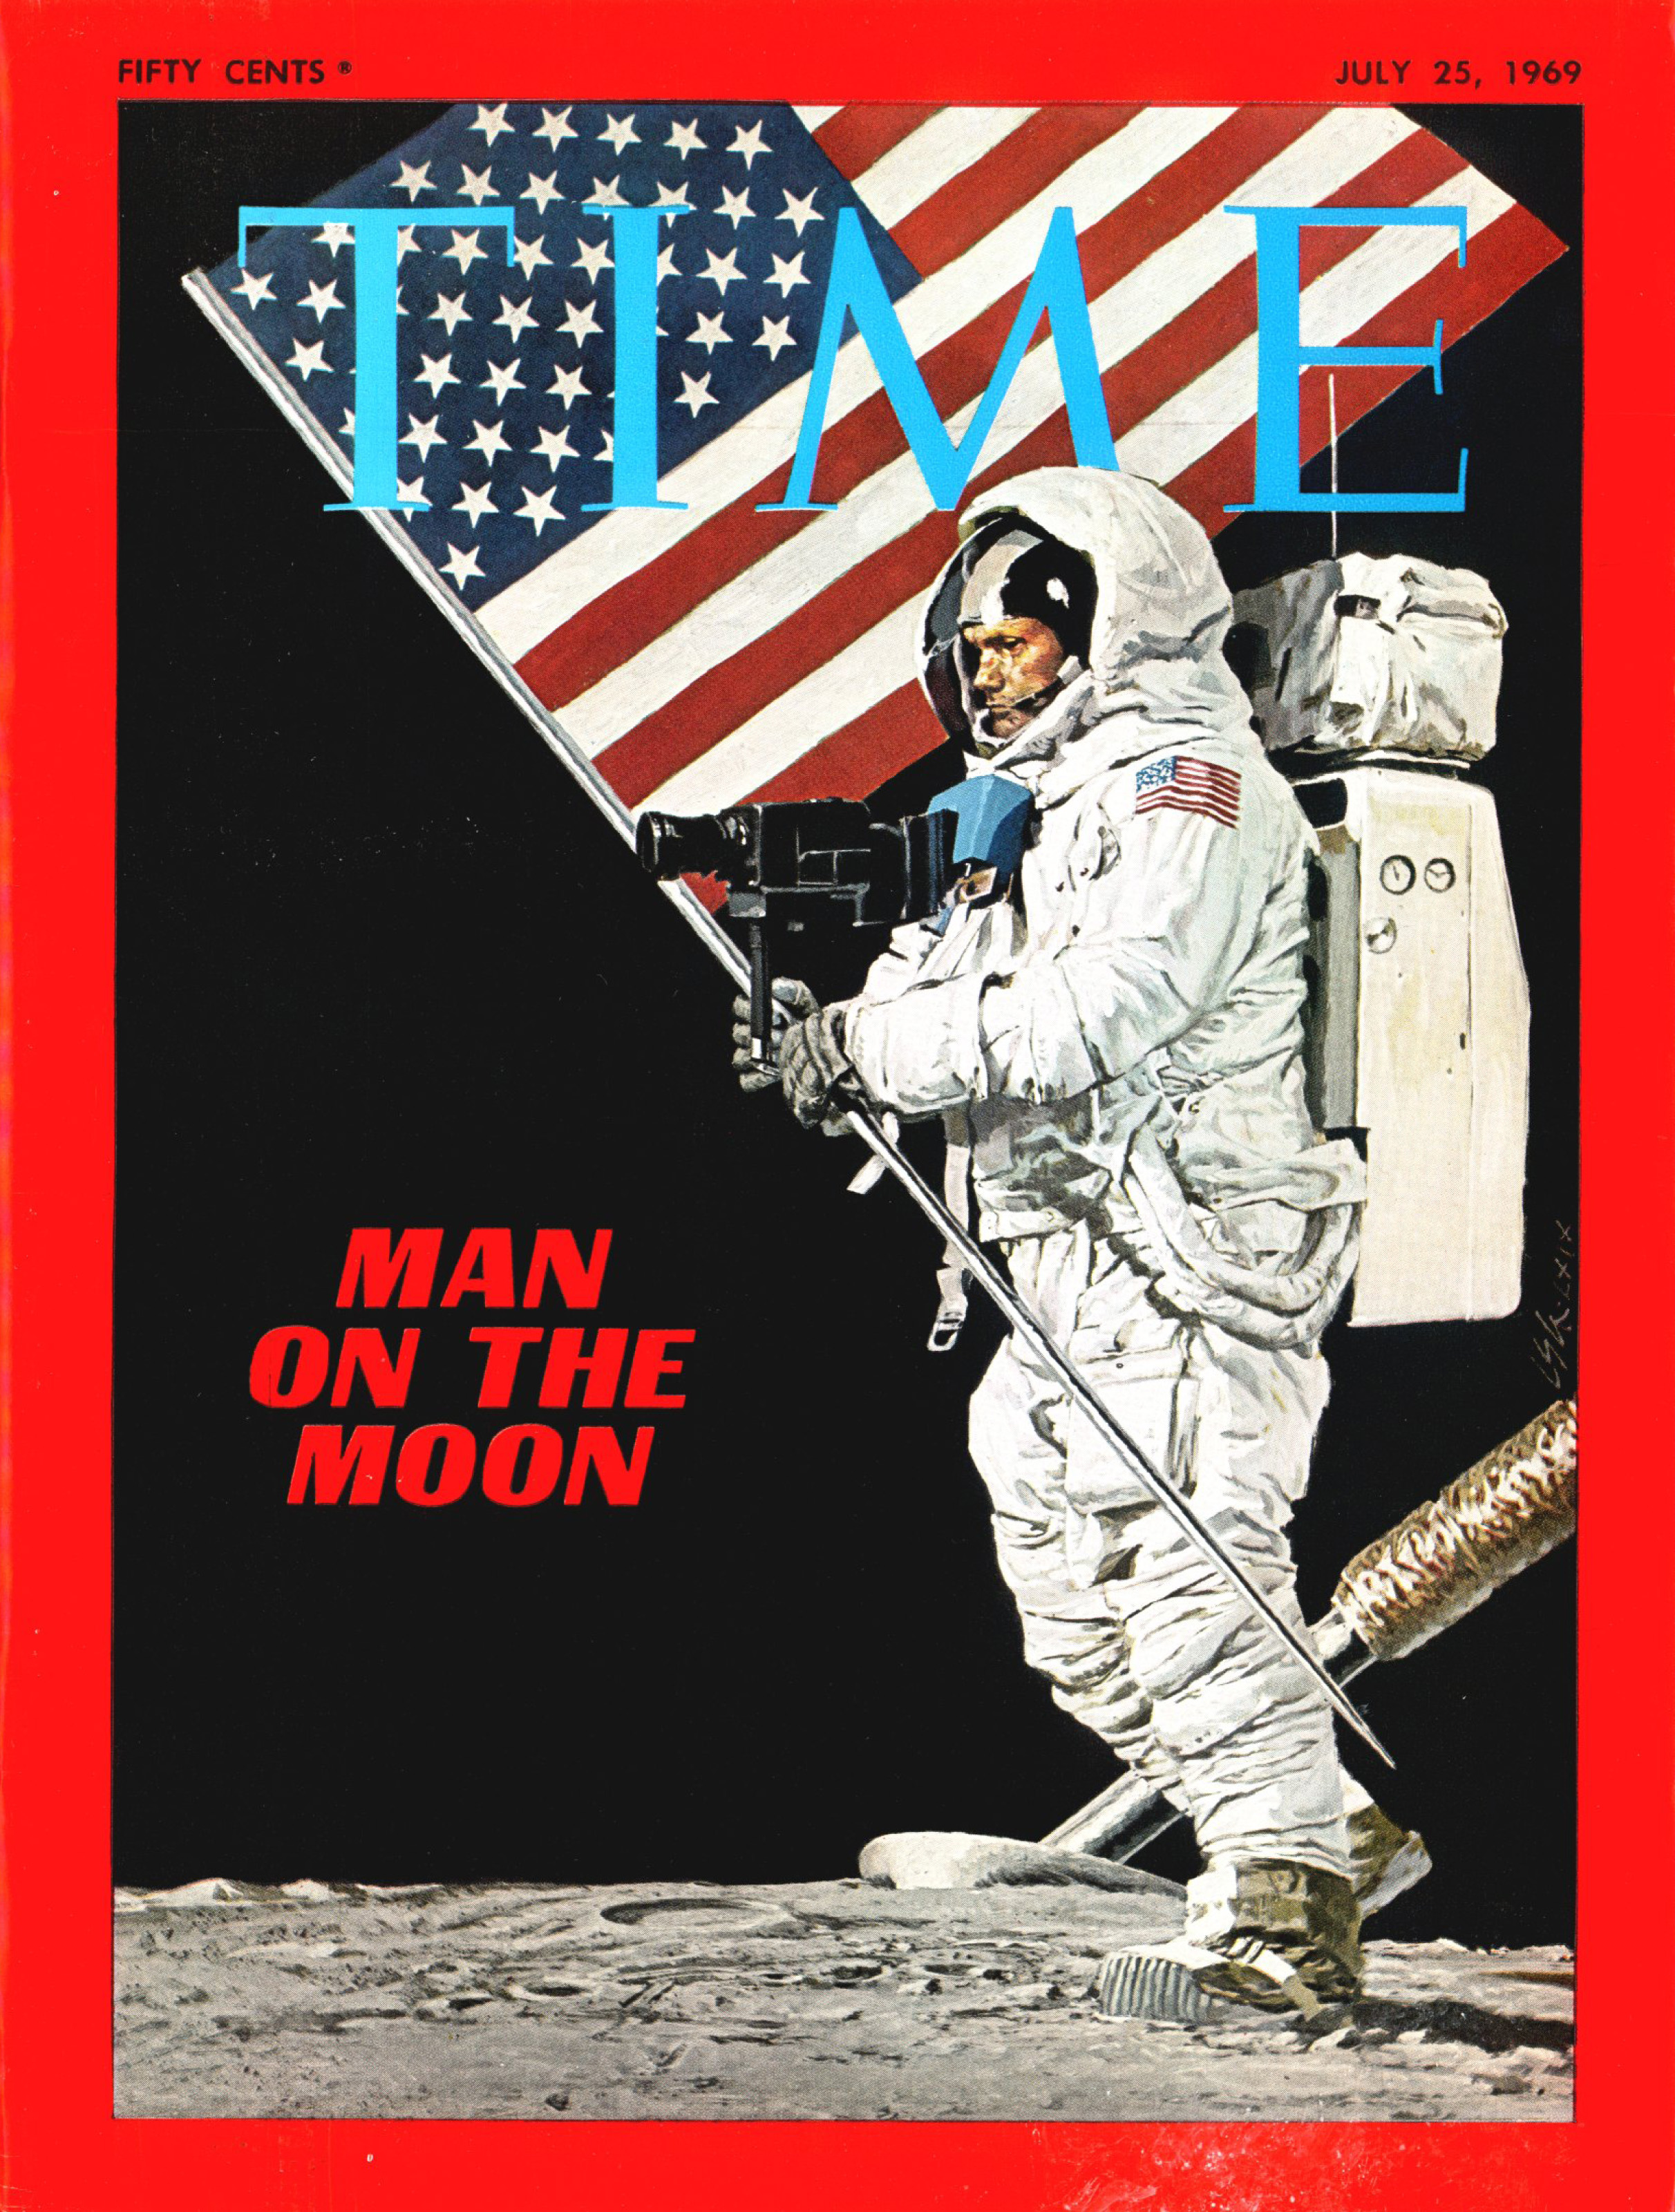 The cover of Time Magazine on July 25, 1969